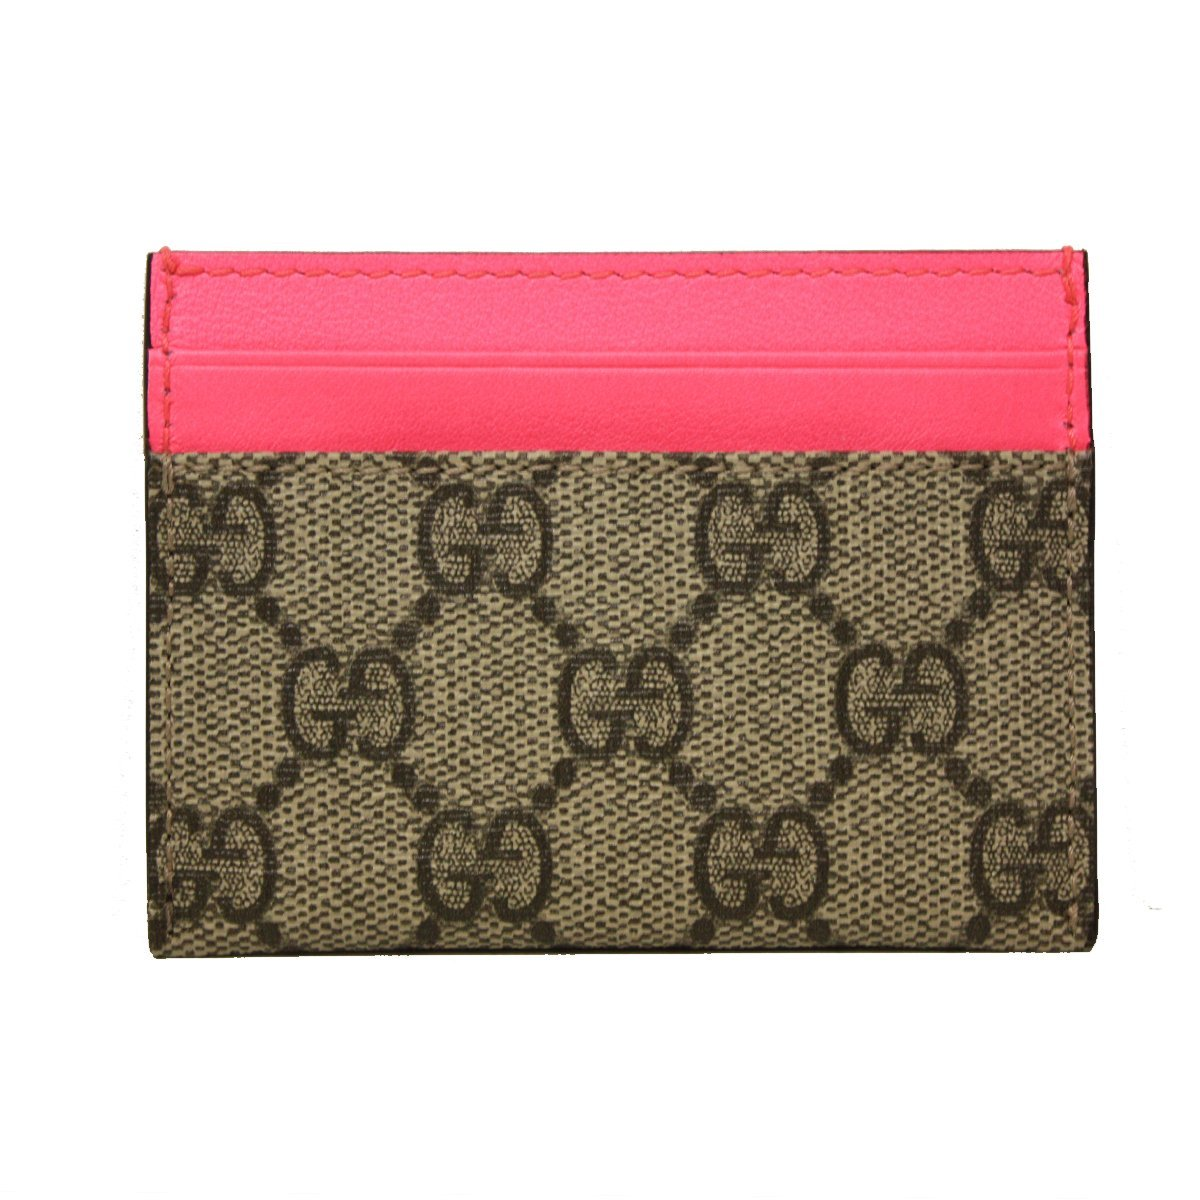 e30930ea9b518c Gucci GG Logo Neon Pink Star Business Card Case 261426 KH41G at Amazon  Women's Clothing store: